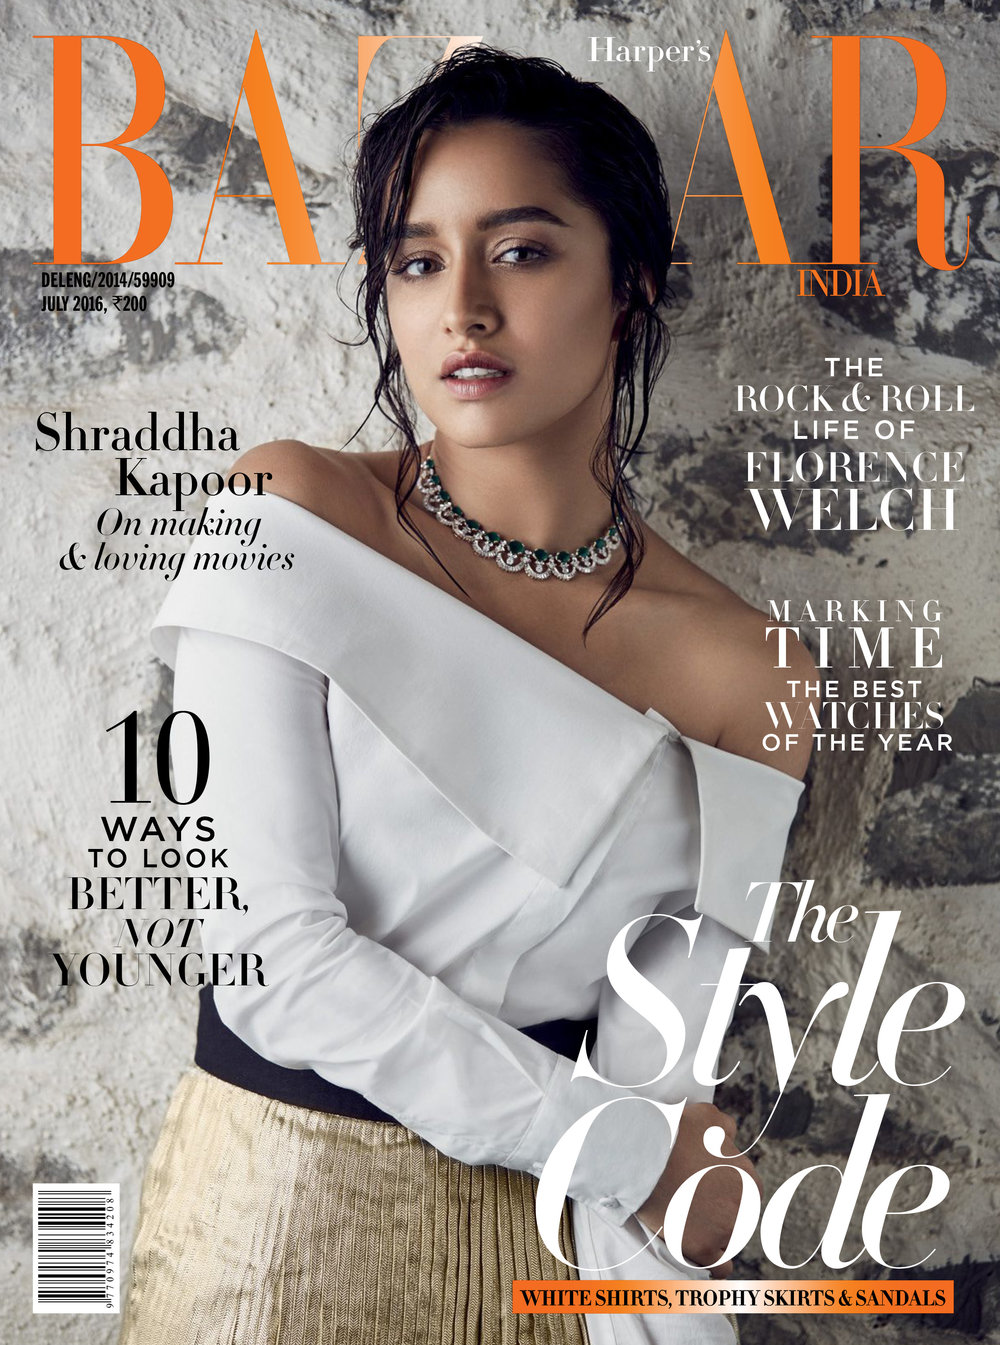 Harper's Bazaar India - July 2016-1.jpg